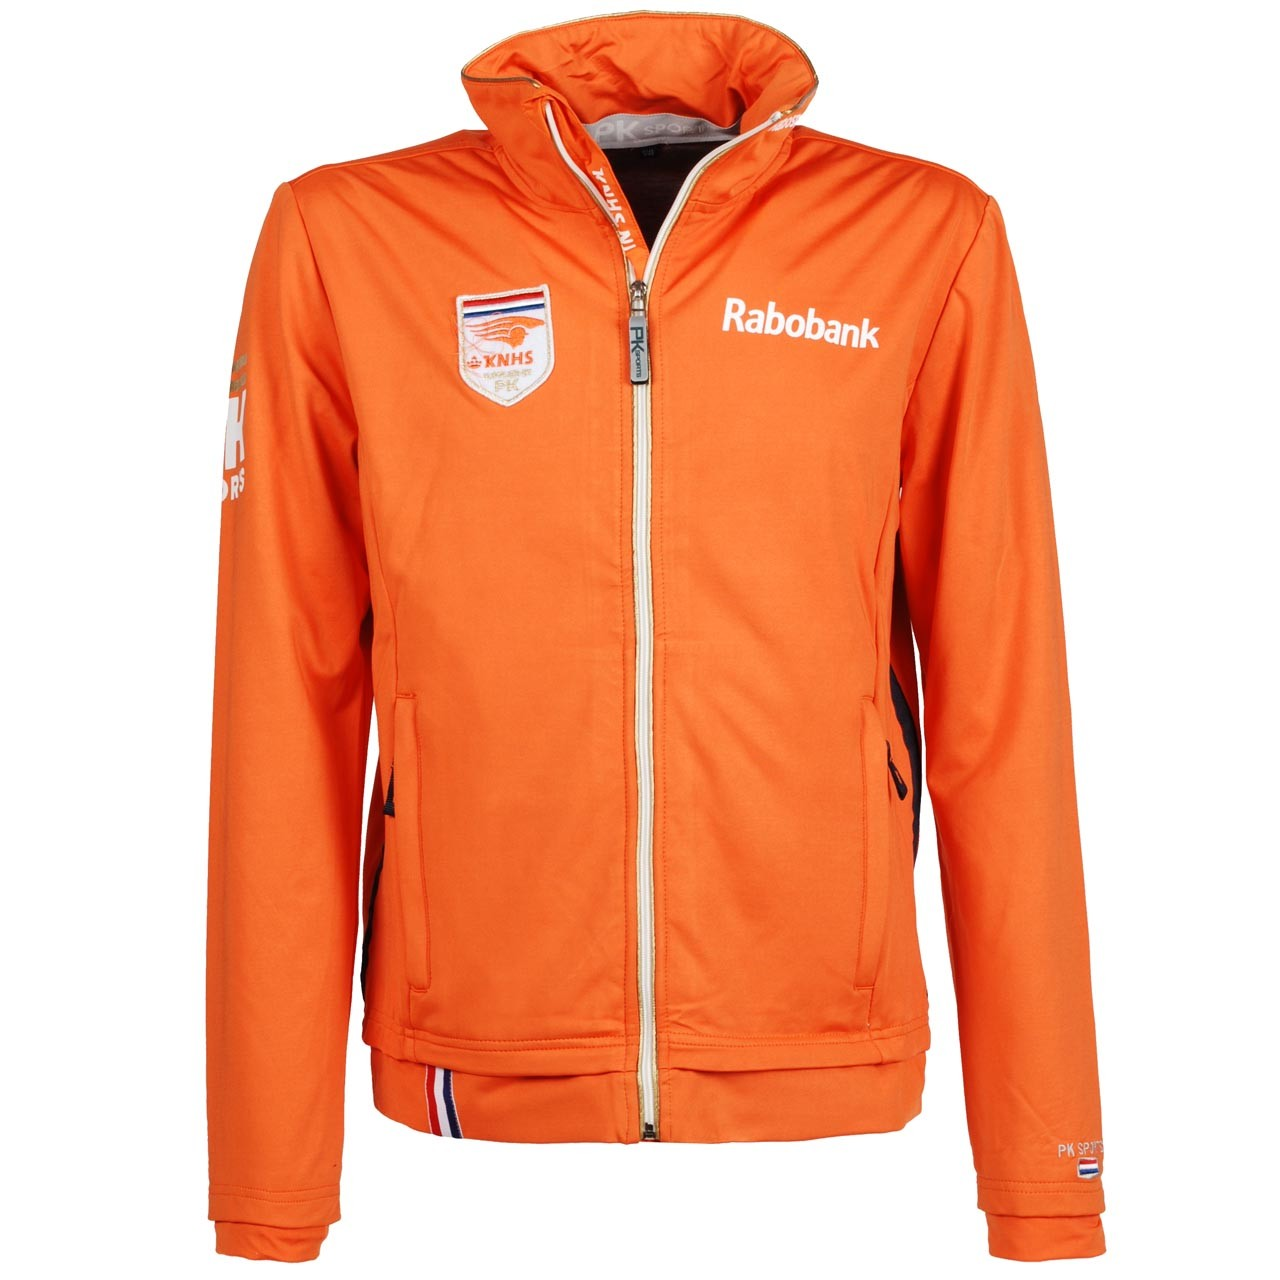 KNHS Softshell Heren